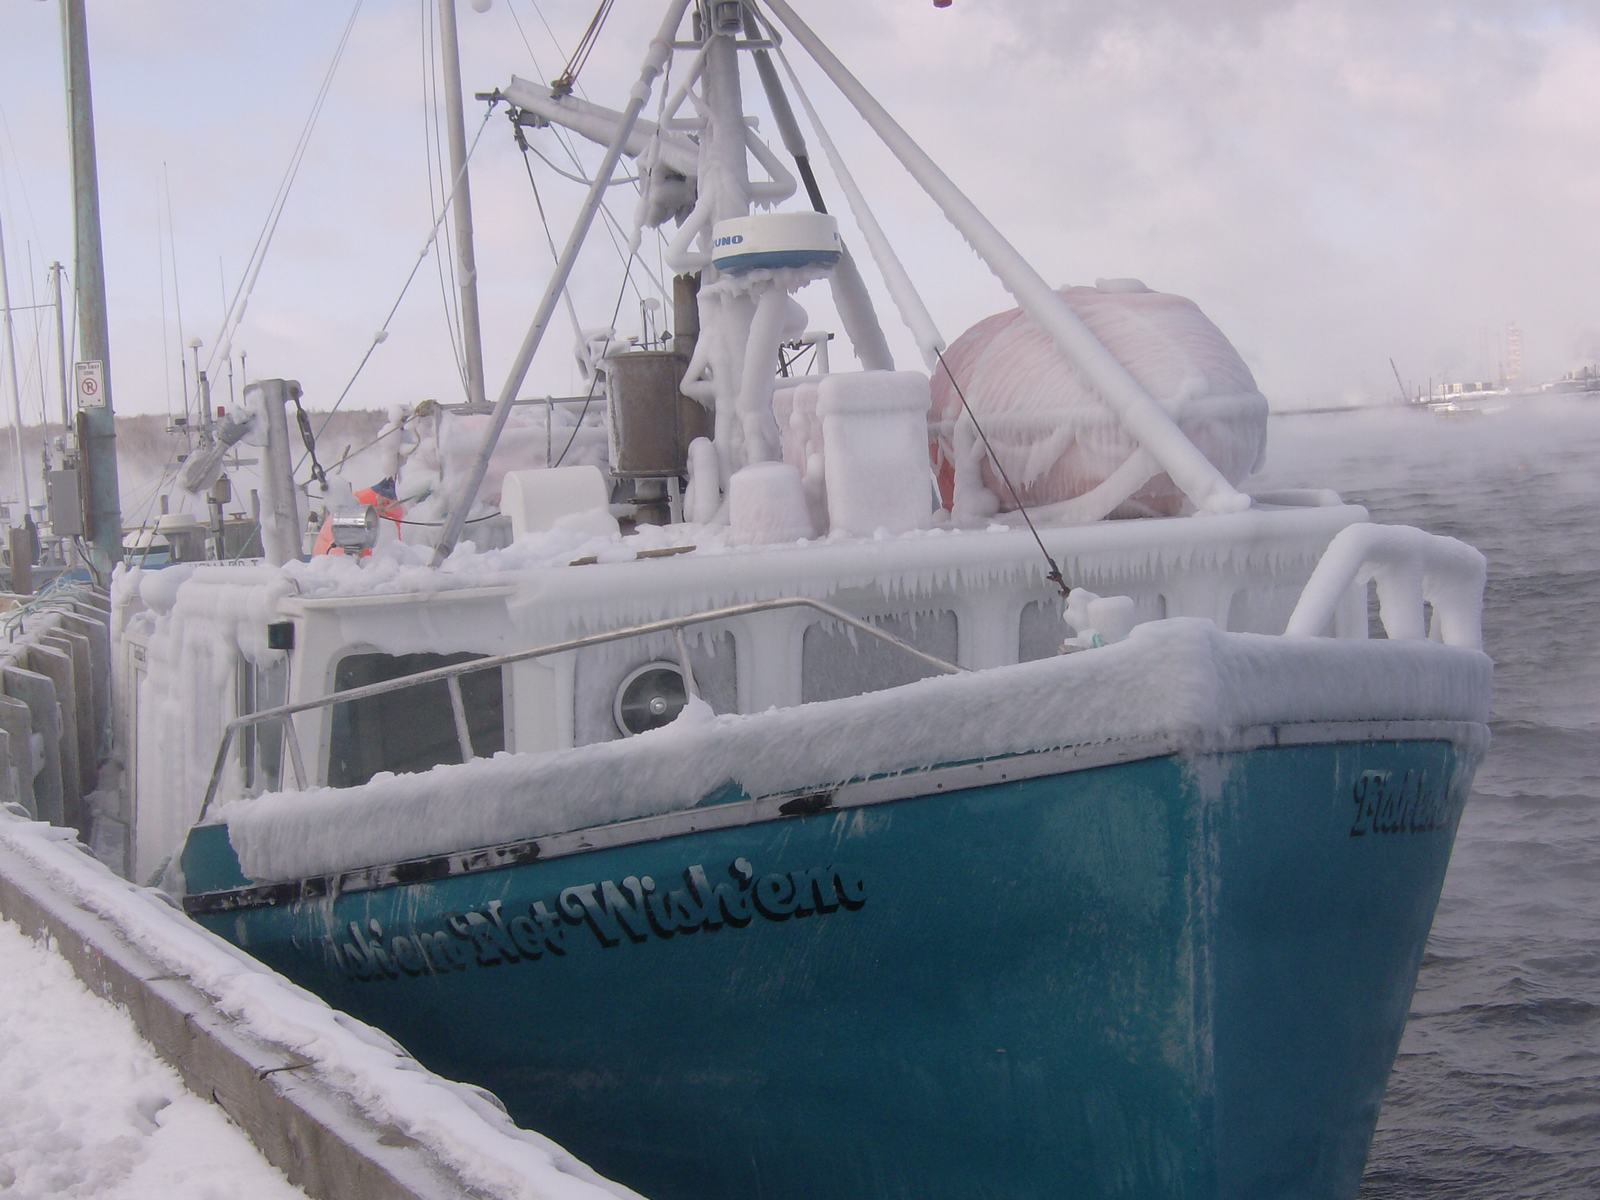 Wish'en for Spring, Boat, Con0207, Fog, Freeze, HQ Photo